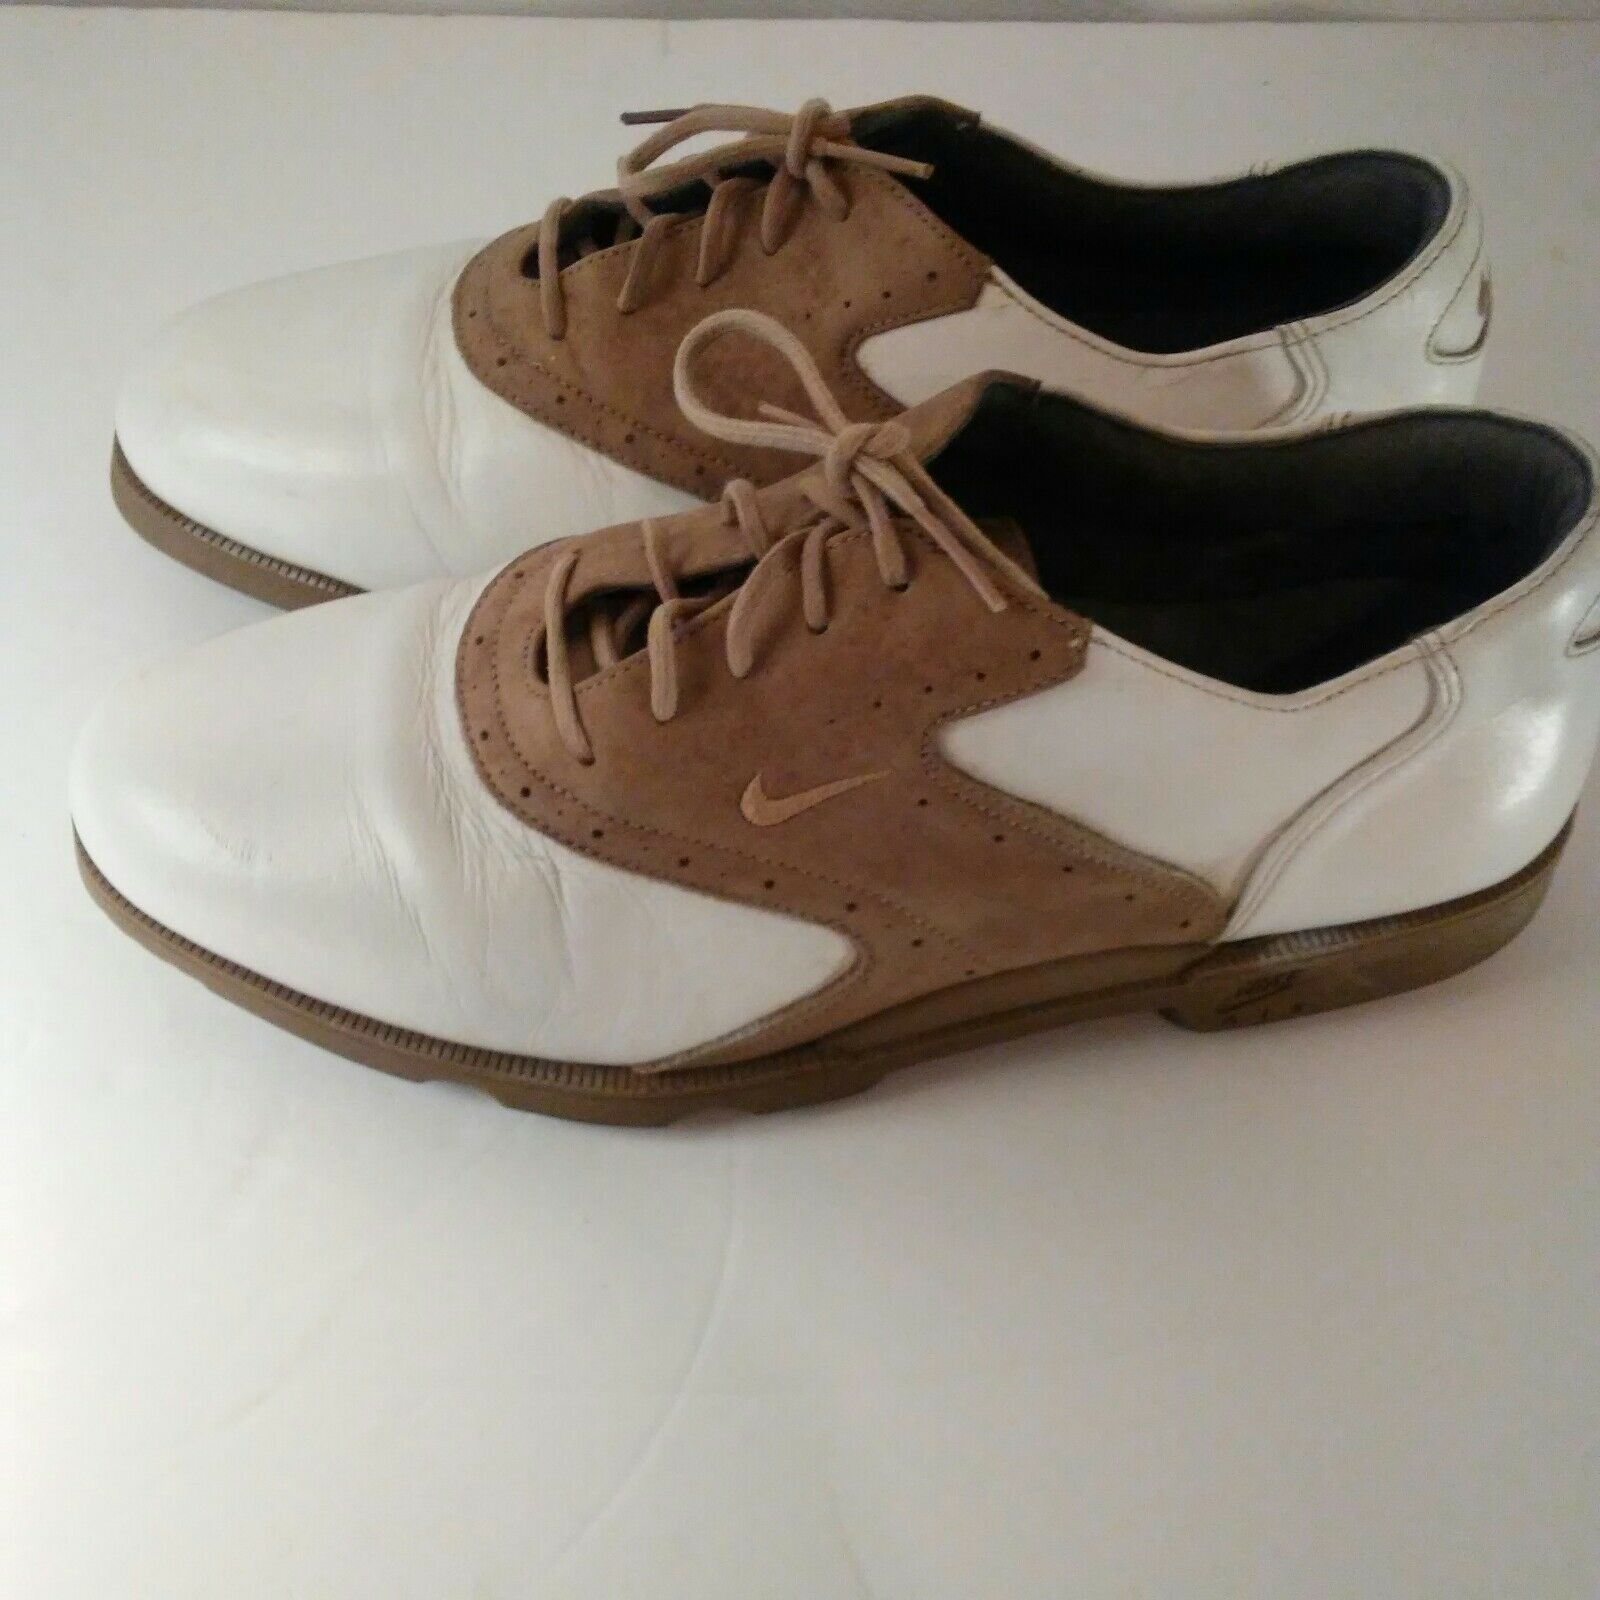 Nike Air Classic Plus White & Brown Saddle Golf Shoes Size 9 image 9